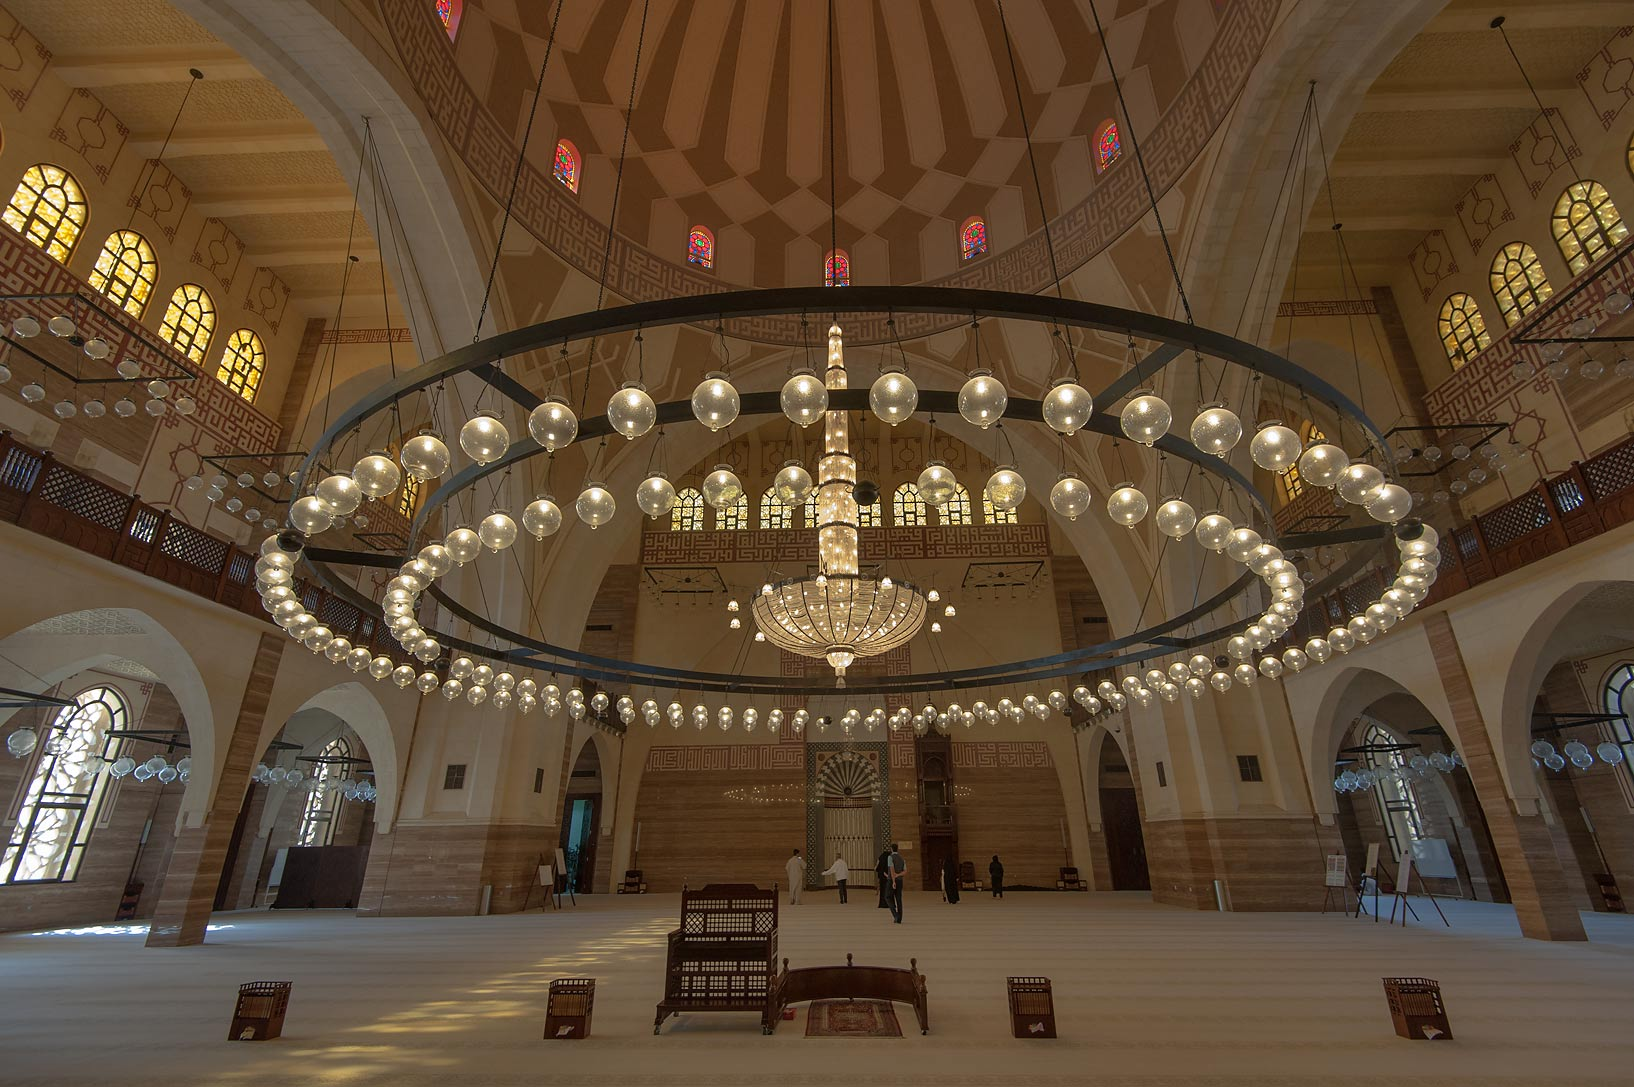 Central chandelier in Ahmed Al Fateh Mosque. Manama, Bahrain